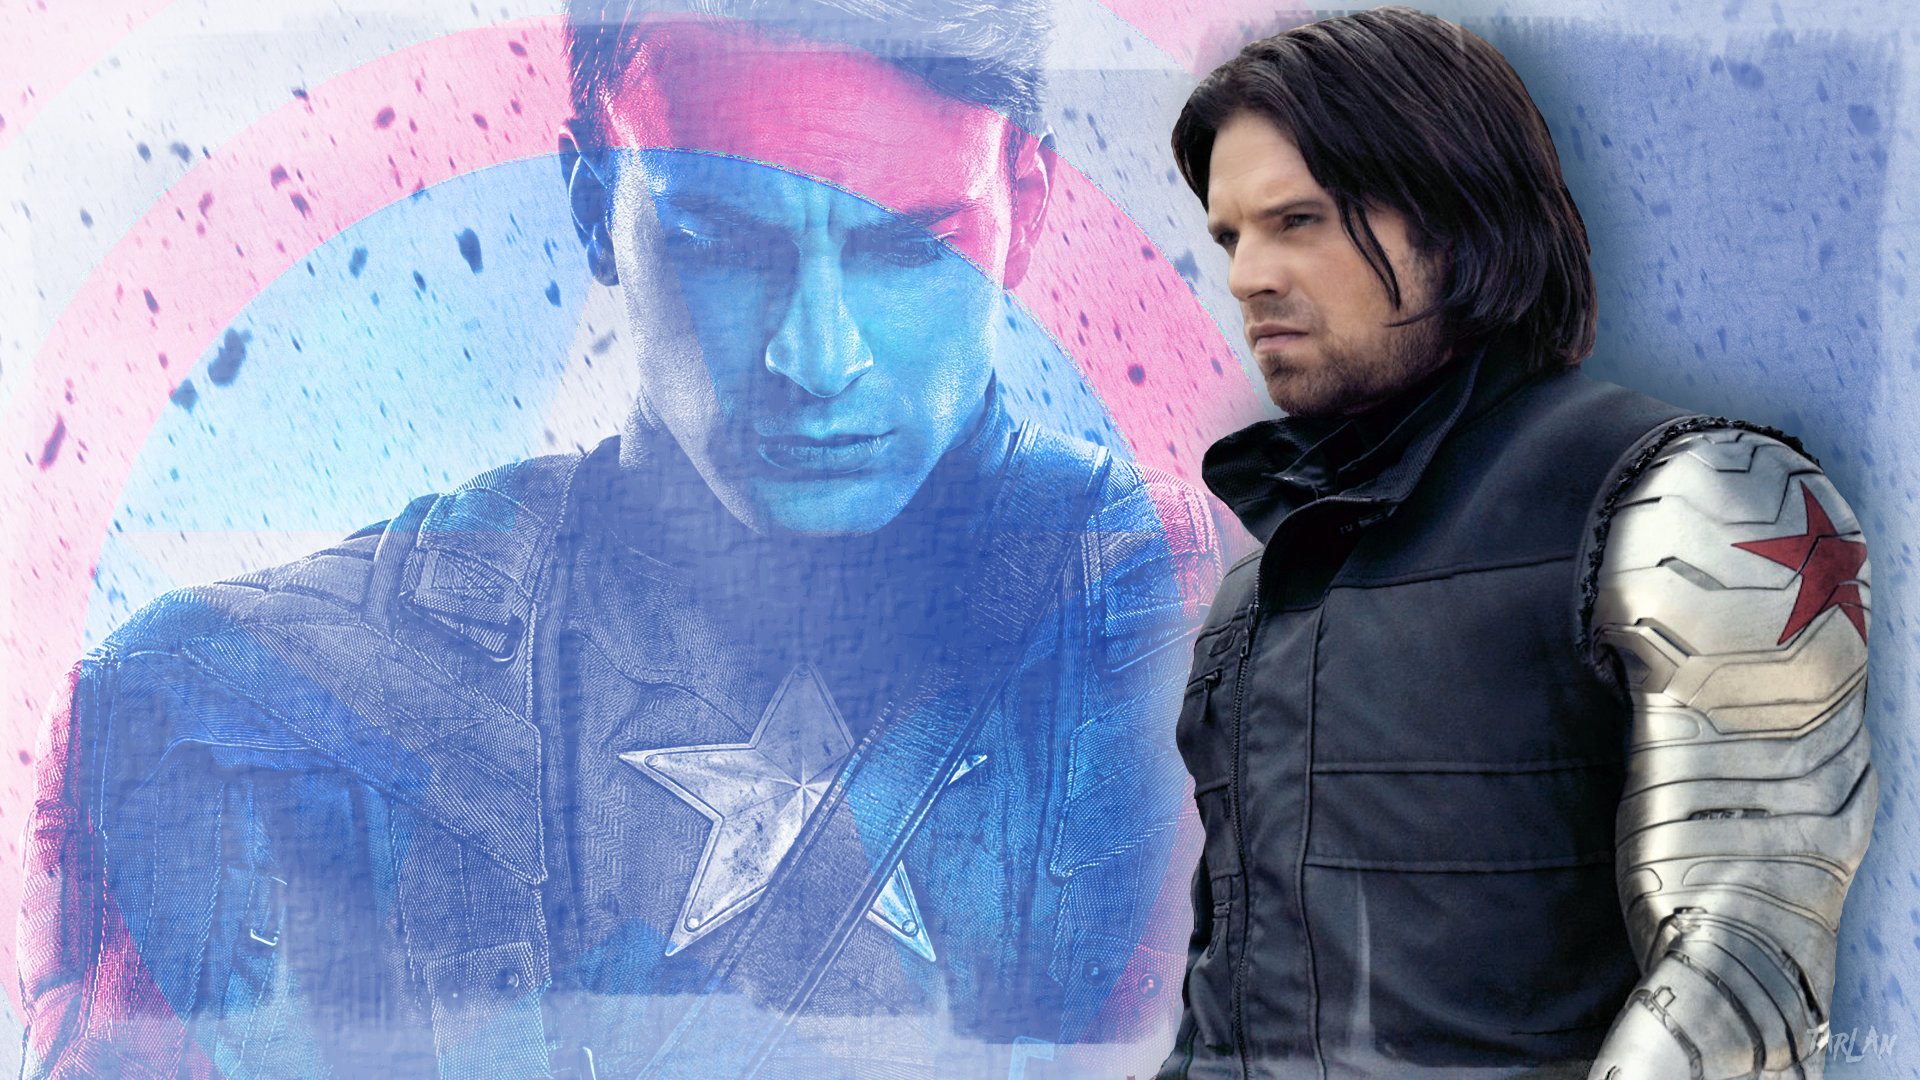 Avengers - Steve and Bucky by Tarlan